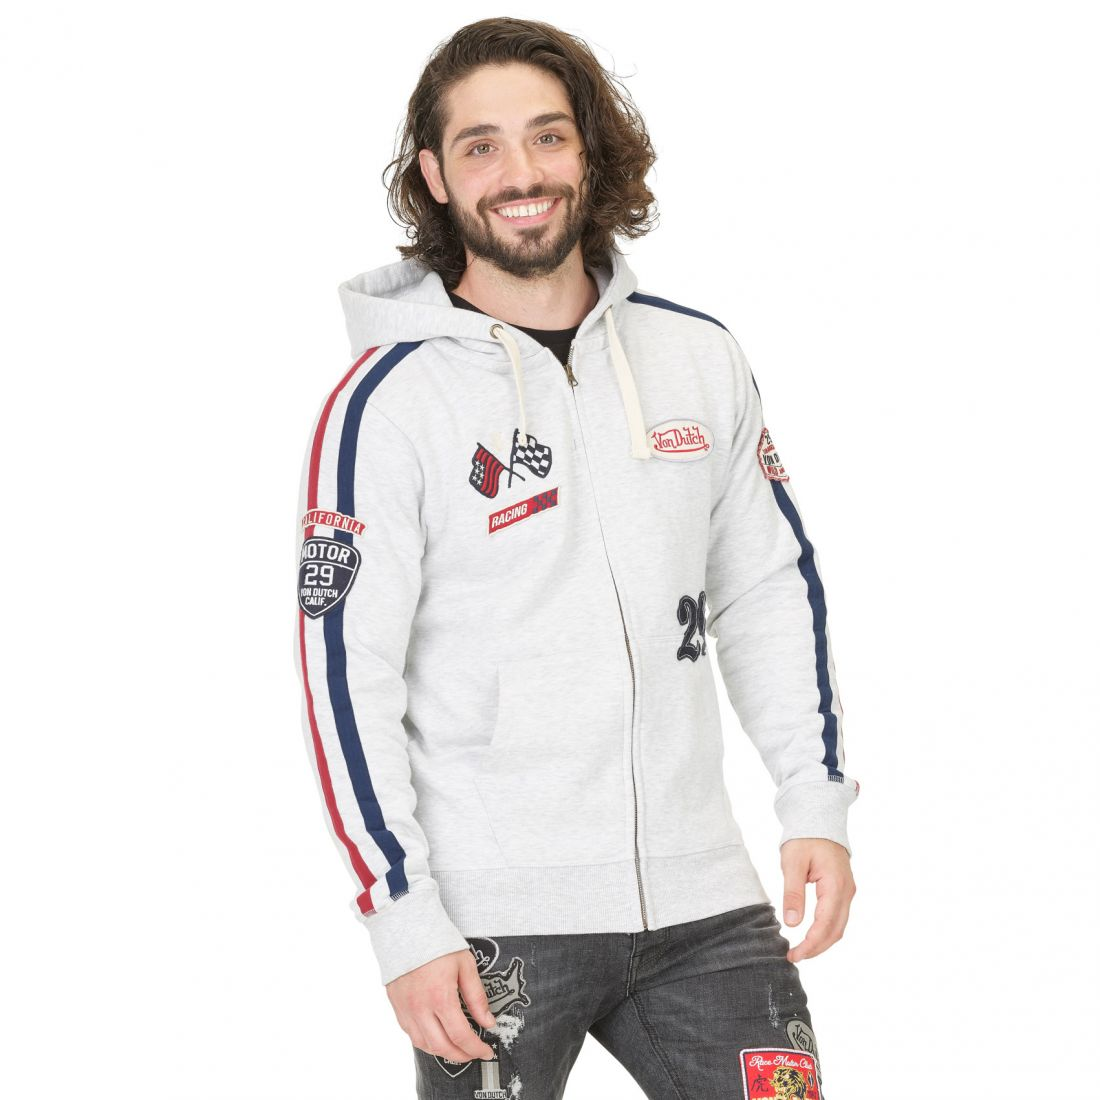 Sweat Zippé à Capuche Homme Von Dutch Bob Gris Chiné